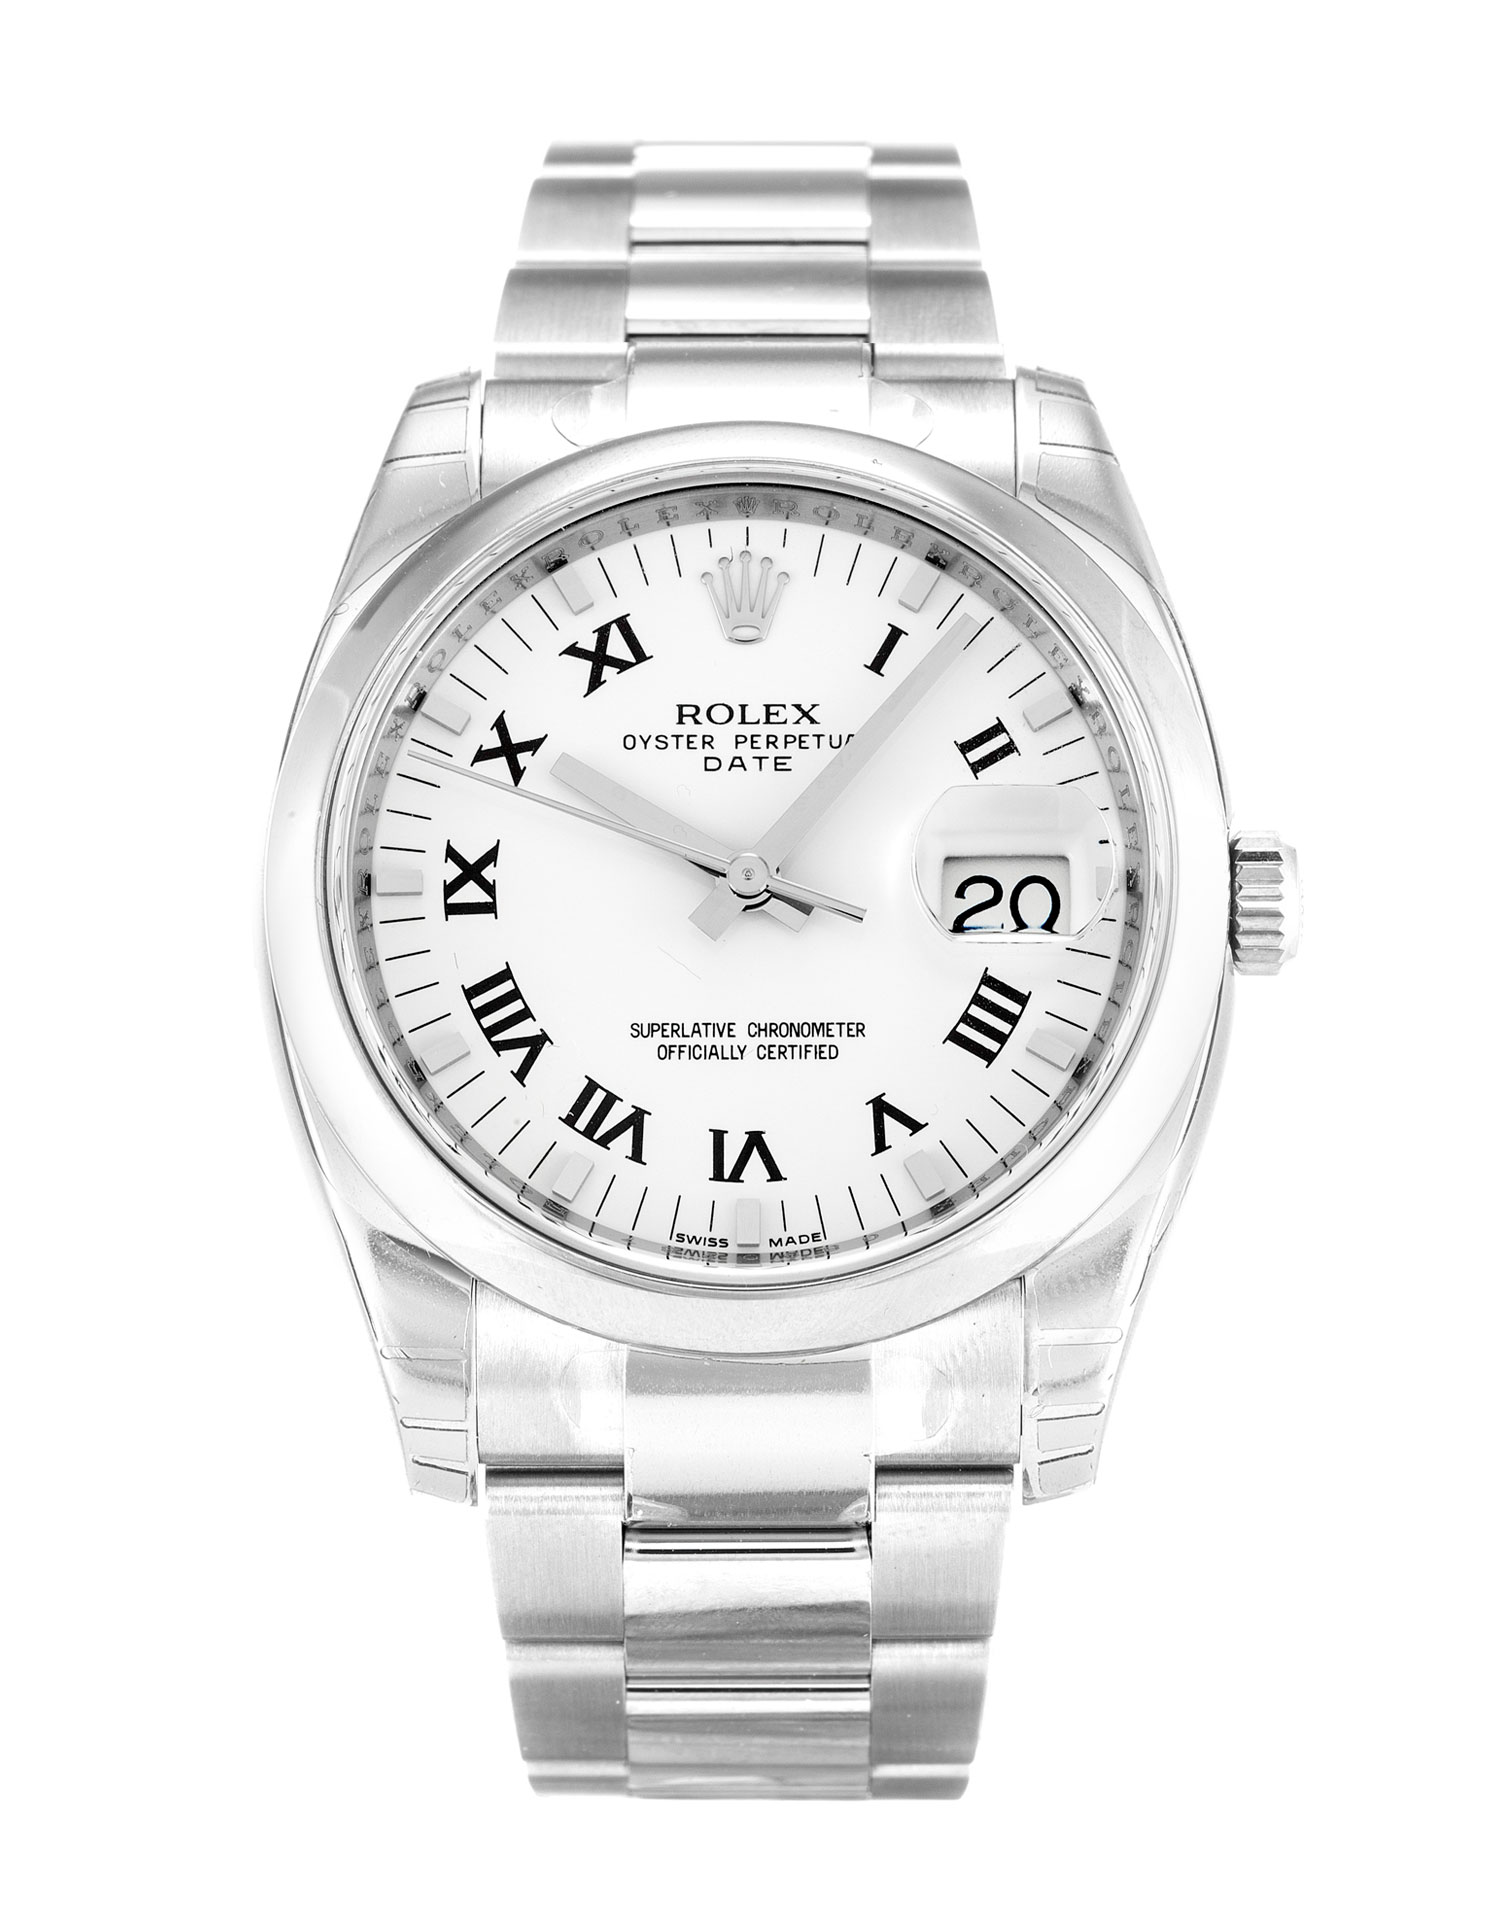 Rolex Oyster Perpetual Date 115200 Unisex 34 Mm Steel Case Automatic Movement – iapac.to